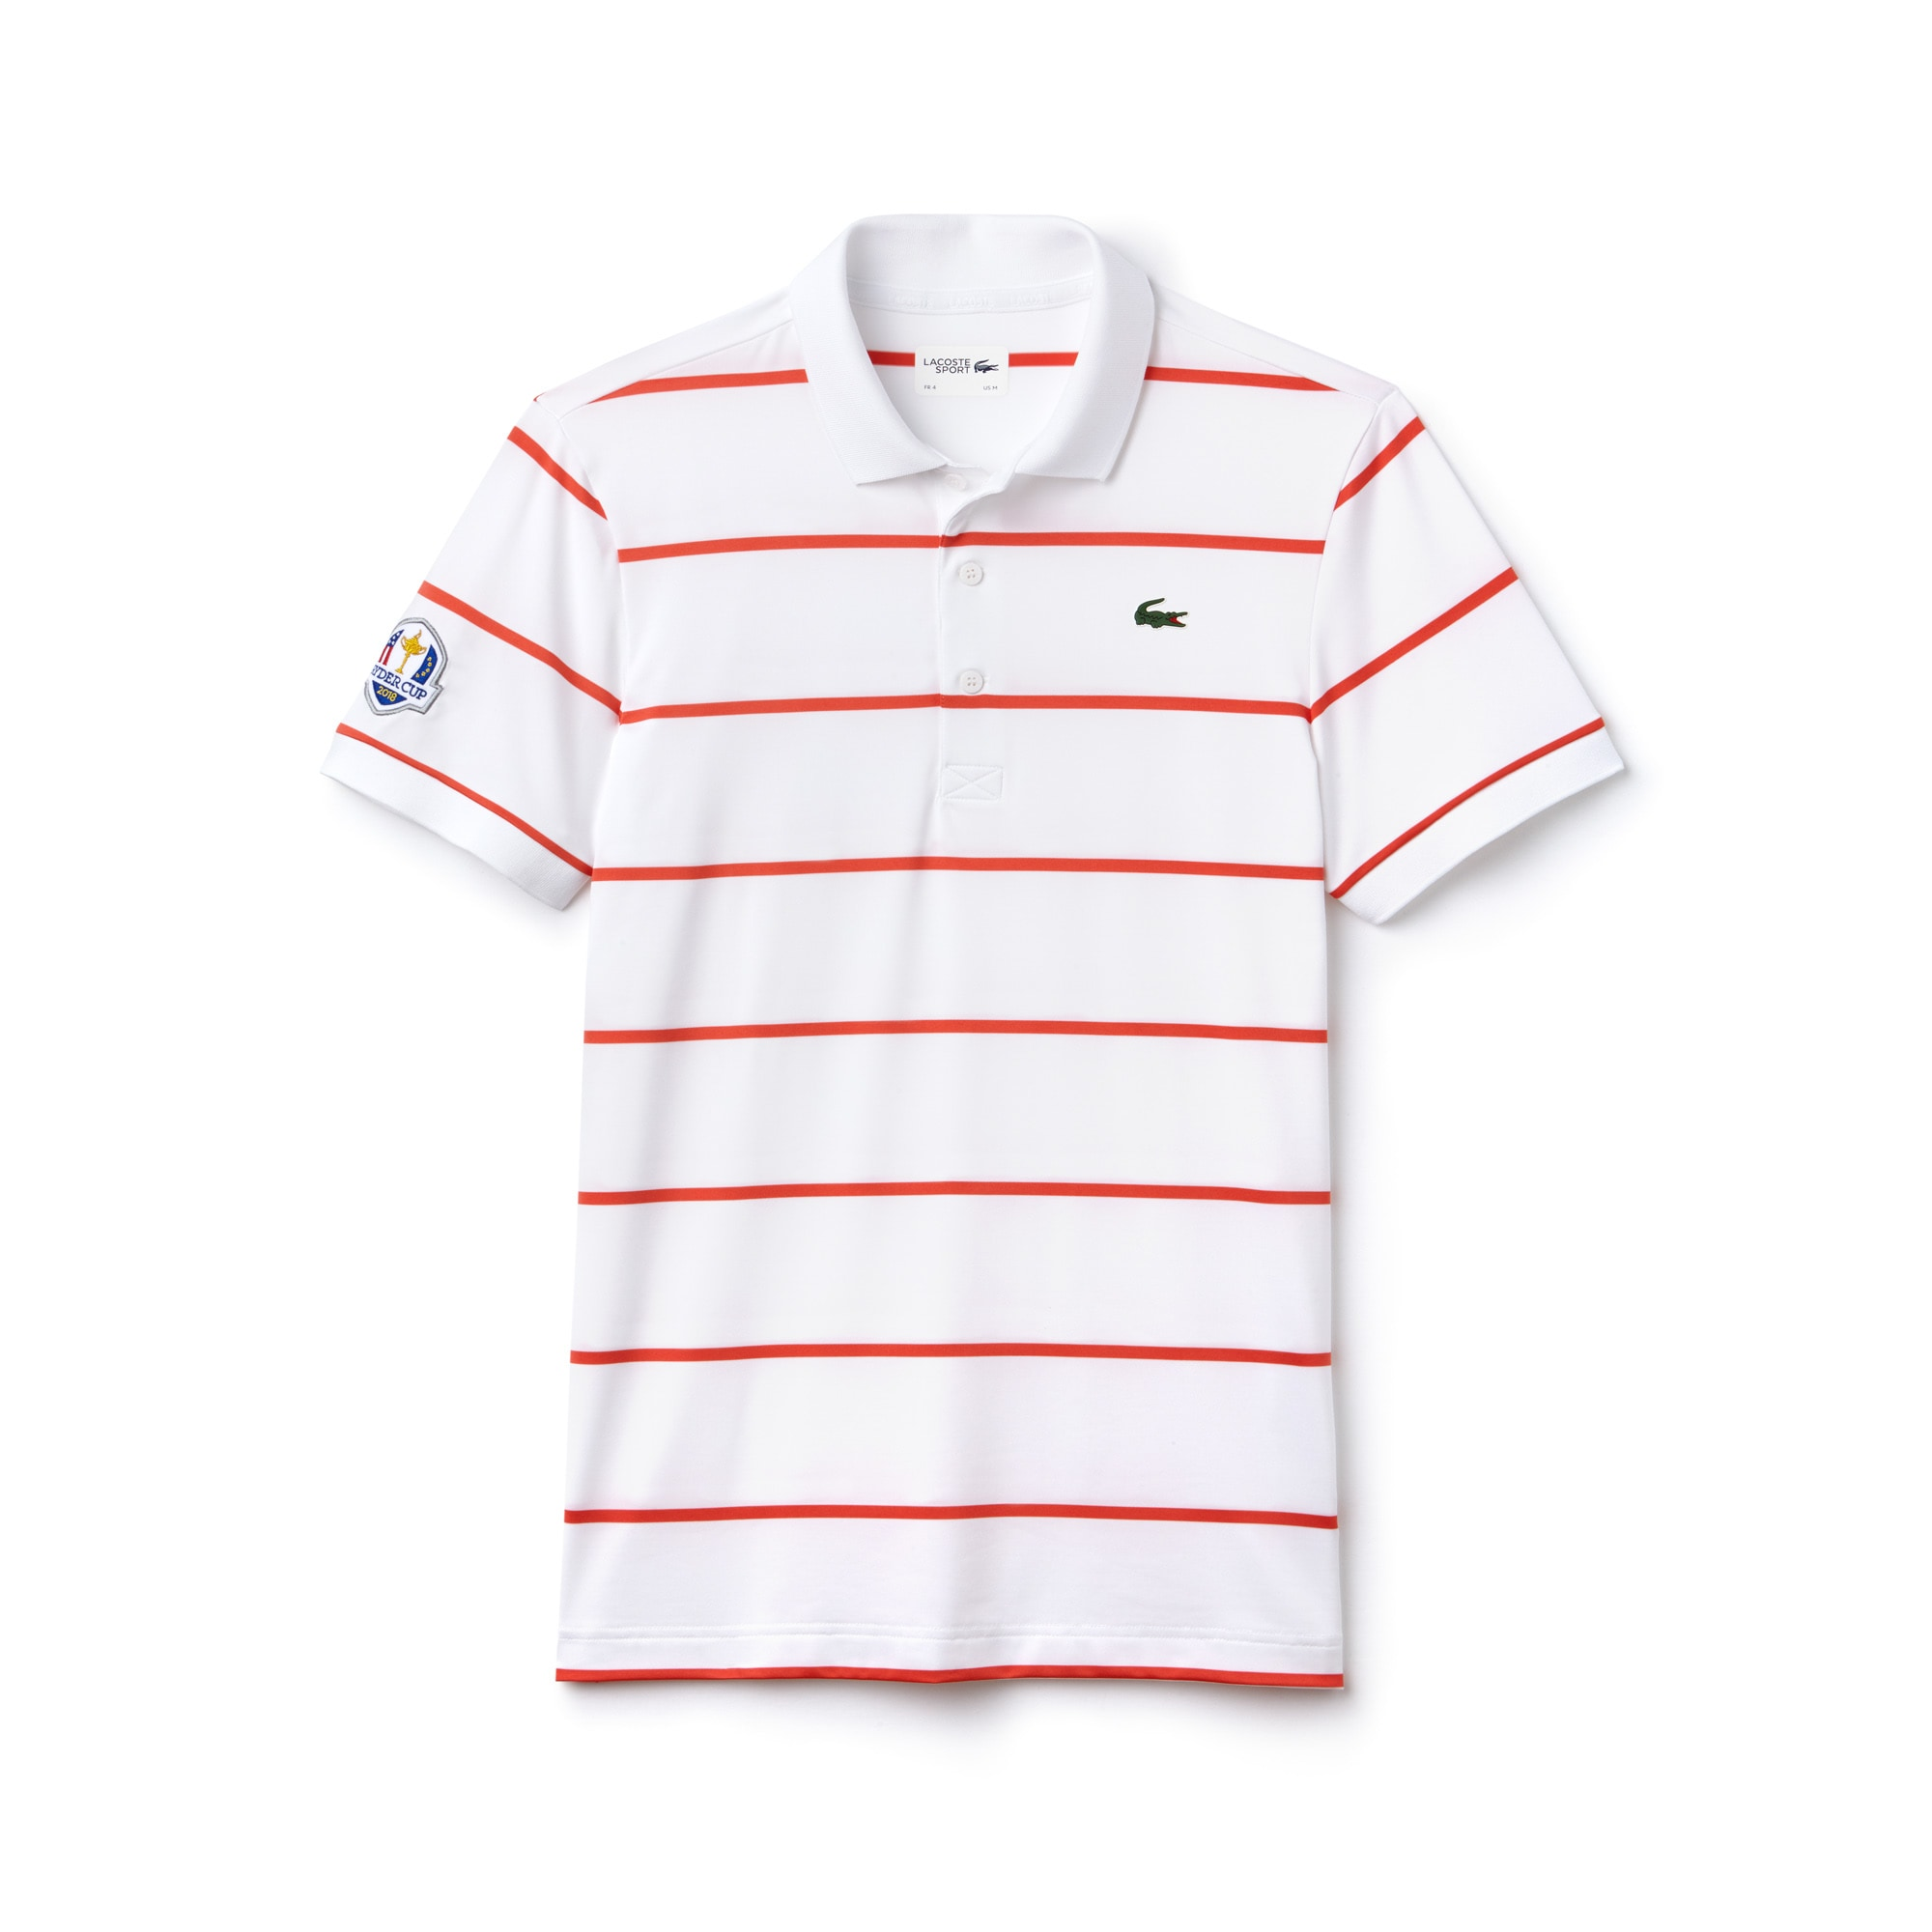 Men's Lacoste SPORT Ryder Cup Edition Striped Stretch Jersey Golf Polo Shirt